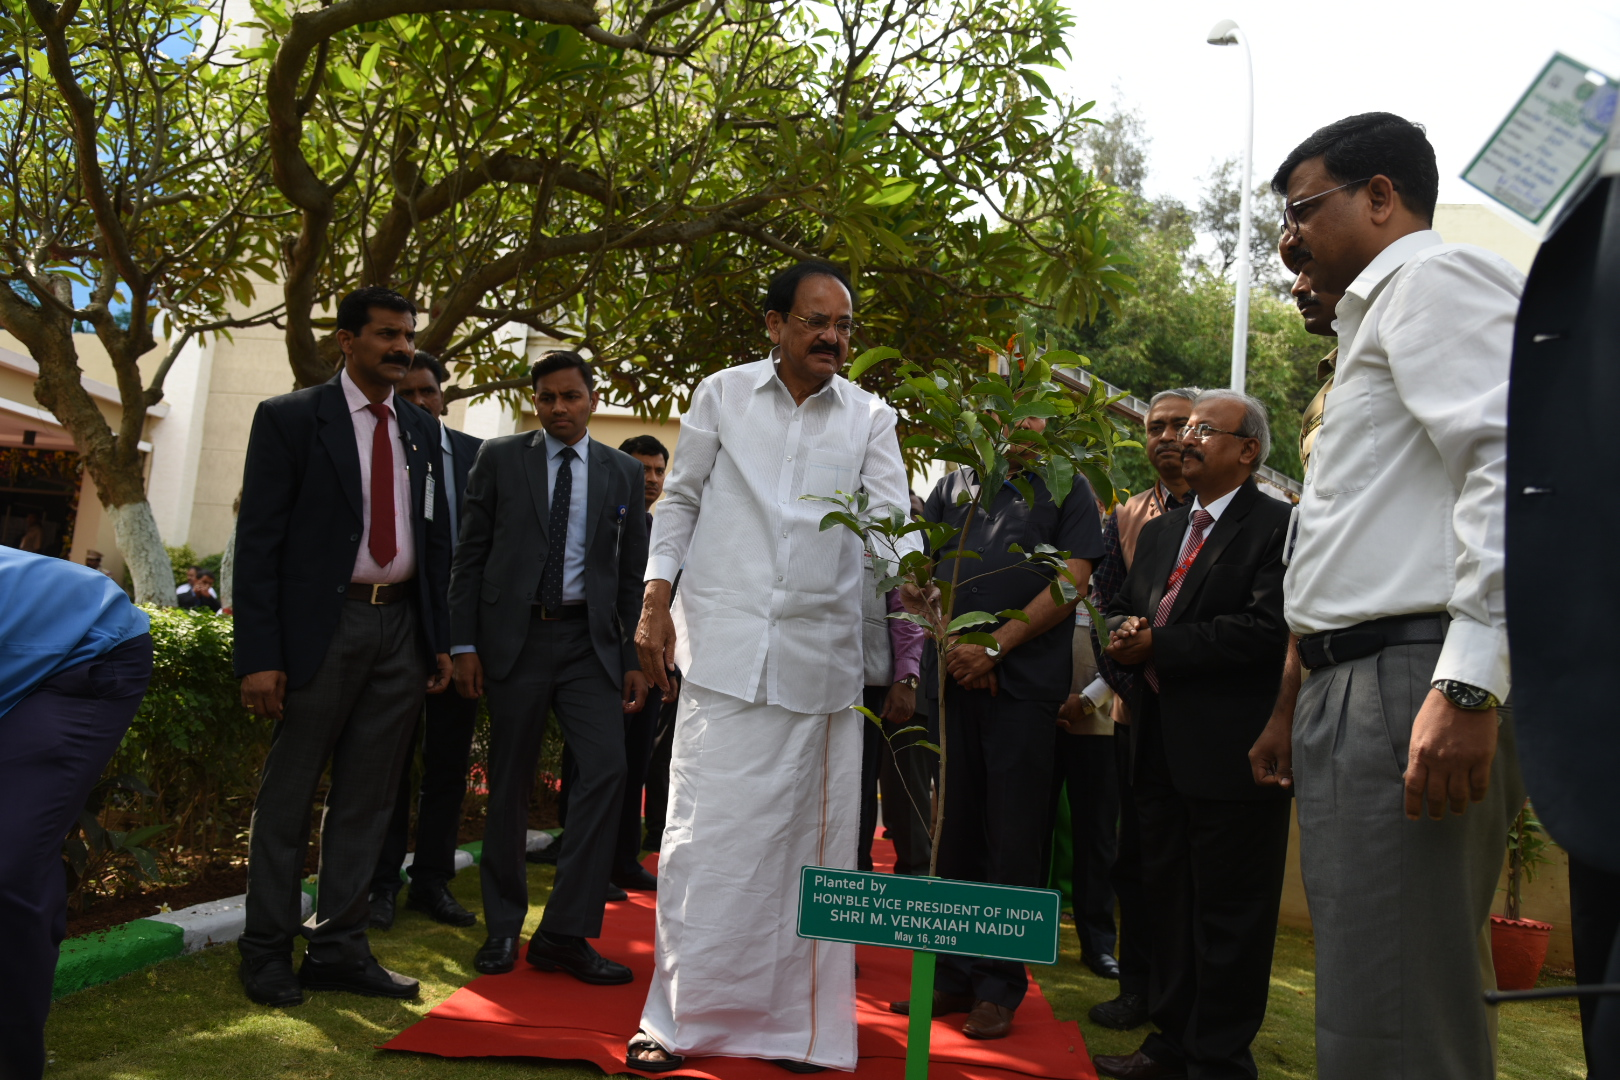 The Vice President, Shri M. Venkaiah Naidu planting a sapling in the premises of the Atomic Minerals Directorate for Exploration and Research, in Hyderabad on May 16, 2019.